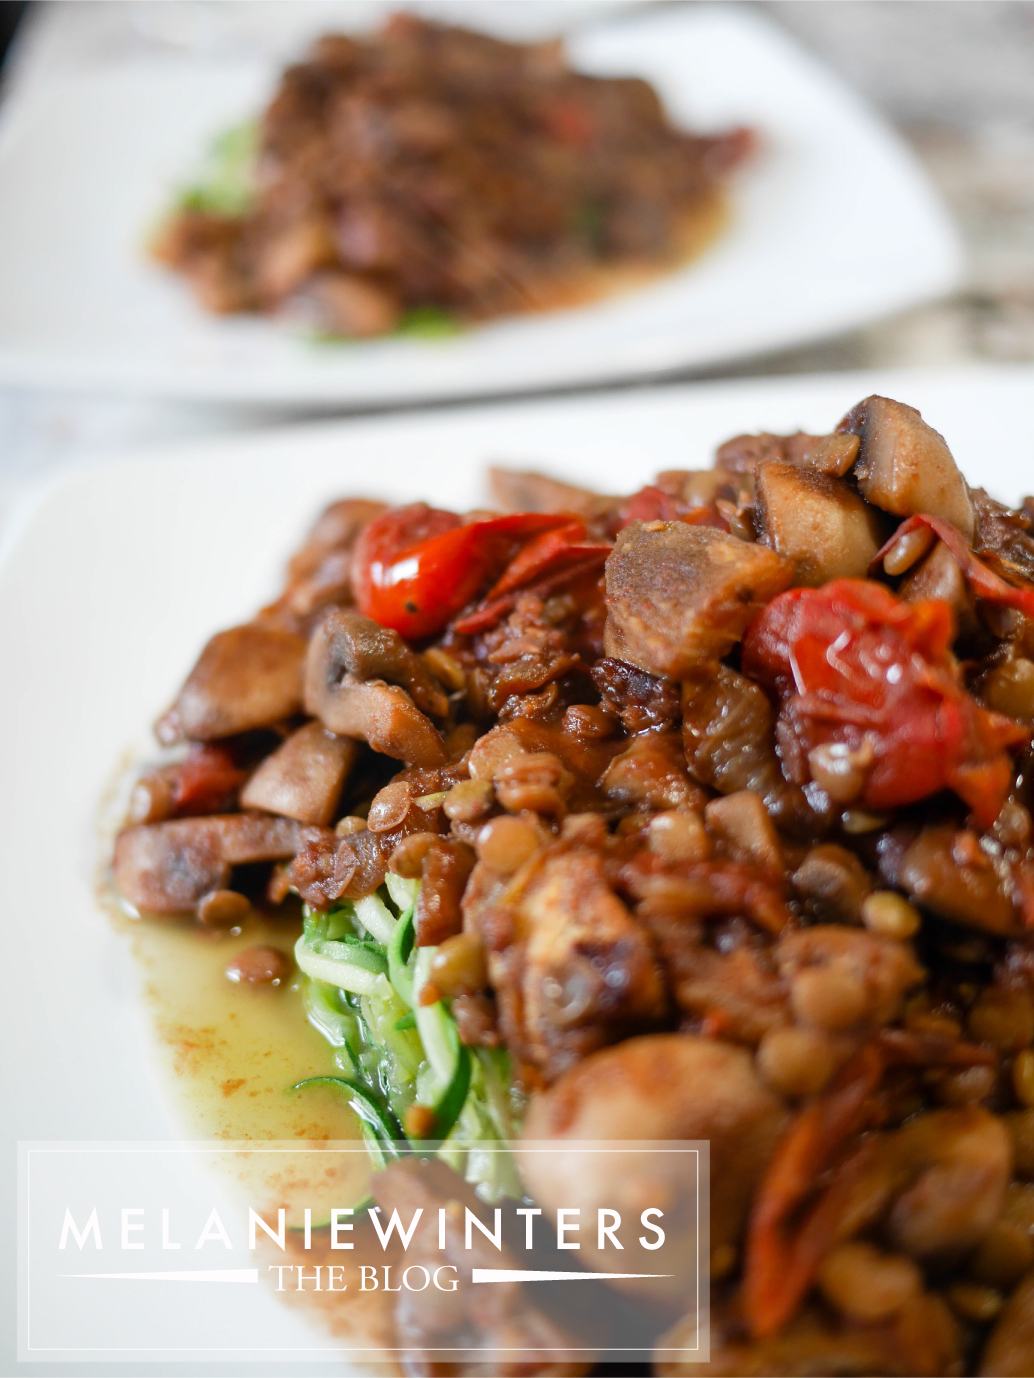 Lentils, eggplants, mushrooms, tomatoes and zucchini make this a seriously great for you dish that you're going to enjoy all year round.